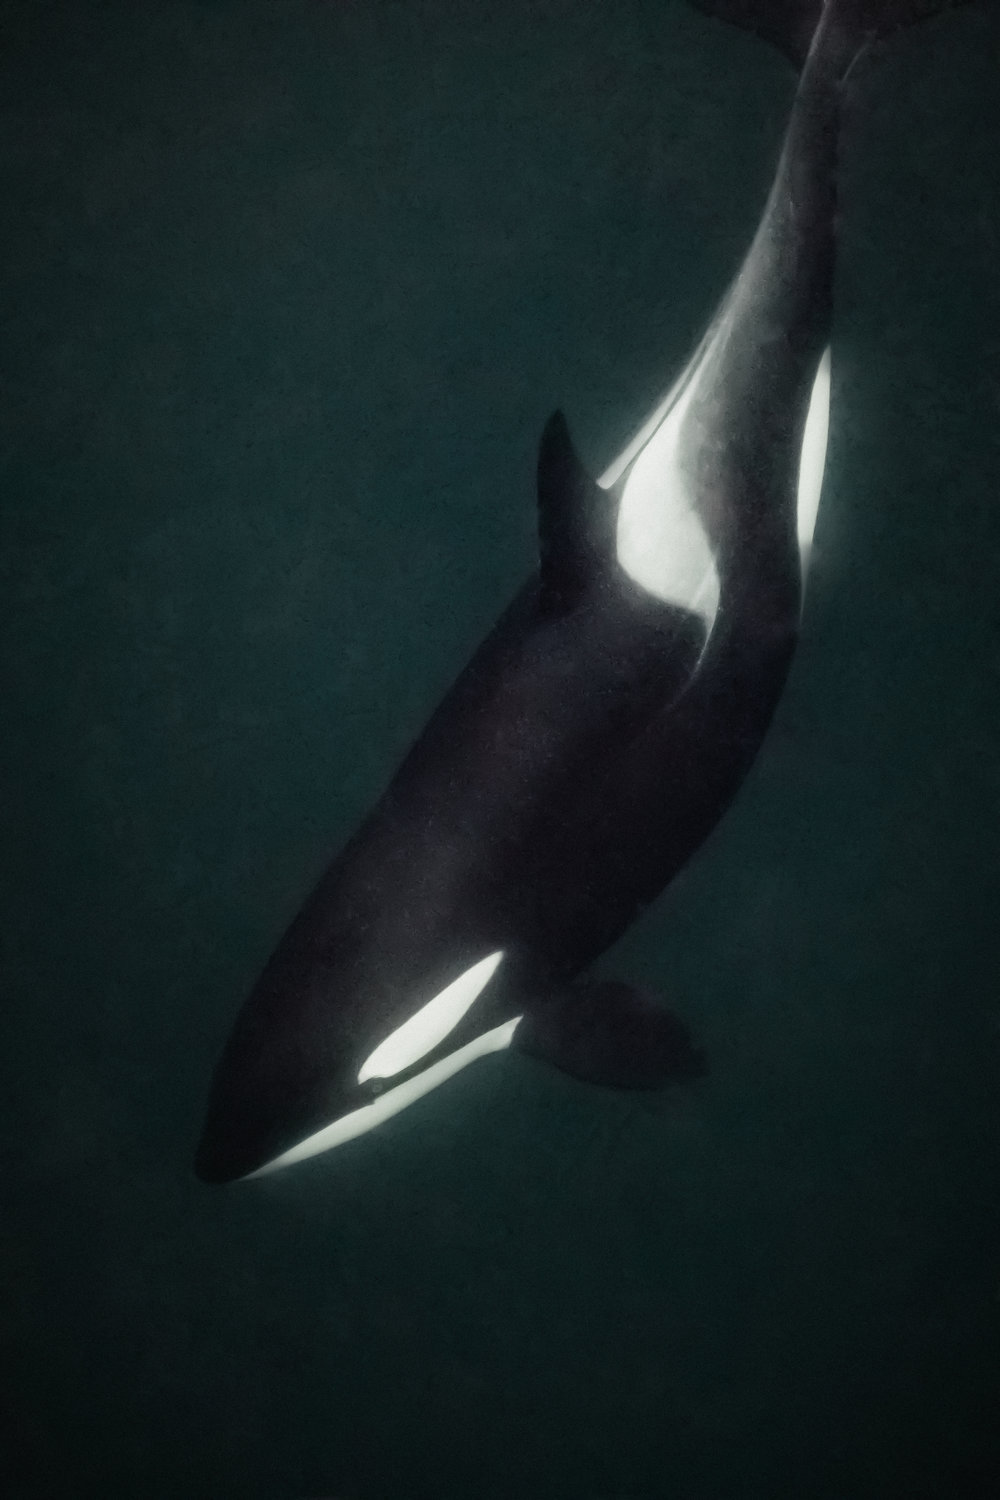 One of the most incredible moments is when an Orca looks you straight in the eye!